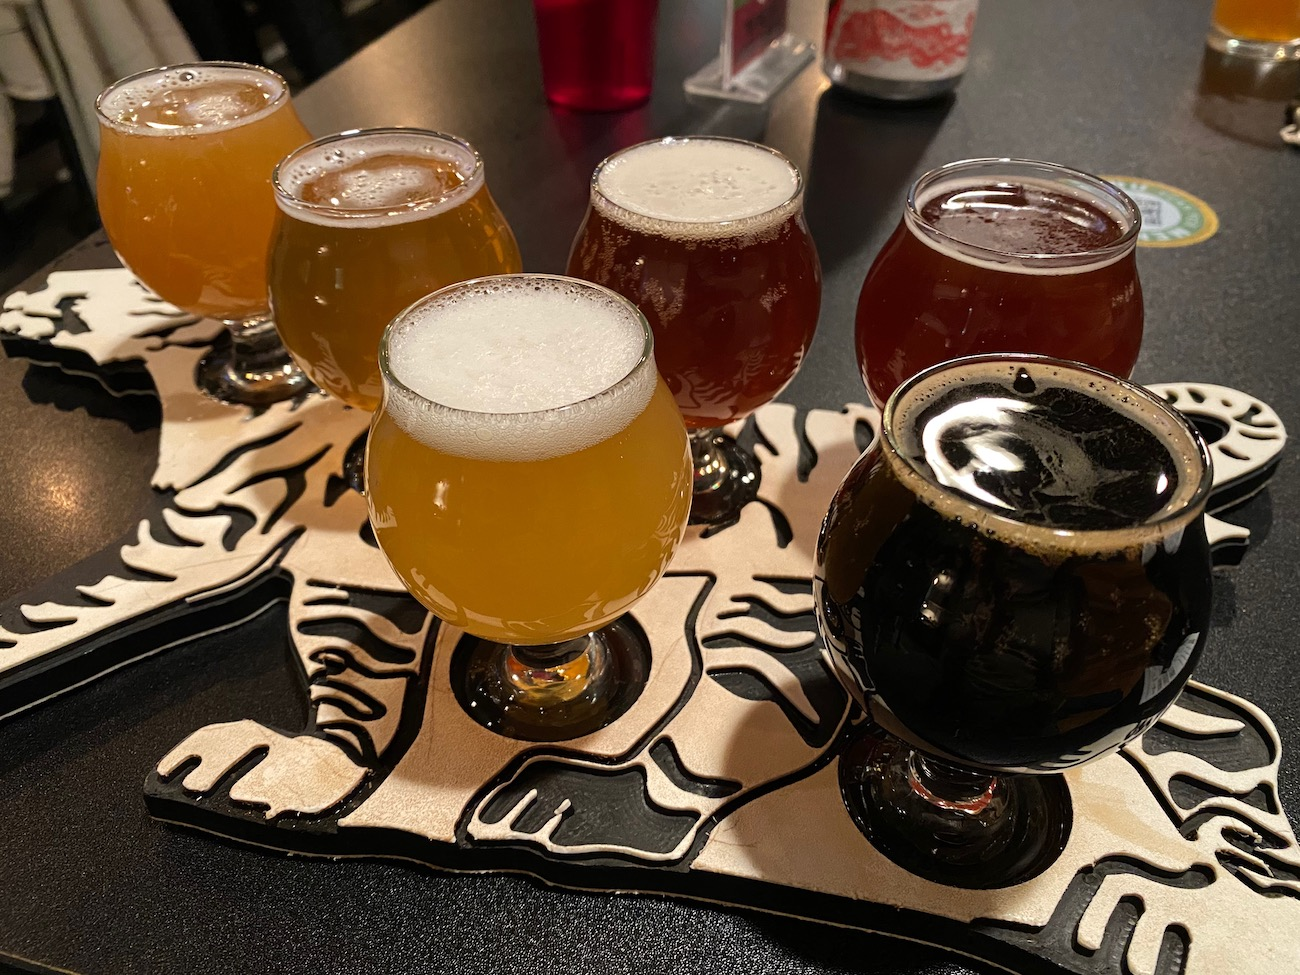 Pictured is a flight at Three Tigers Brewing, ranging from their Small Ax pale ale to the delicious Skeleton Key stout. They serve an array of Vietnamese and Vietnamese-inspired food, as owner Scott Wilkins lived in the country for some time. It's just one of several breweries in Licking County, which offers a beverage trail guide of local breweries, wineries, and coffee and soda shops. ADDRESS: 140 N Prospect Street, Granville, OH (43023) / Image: Chez Chesak{ }// Published: 2.12.21